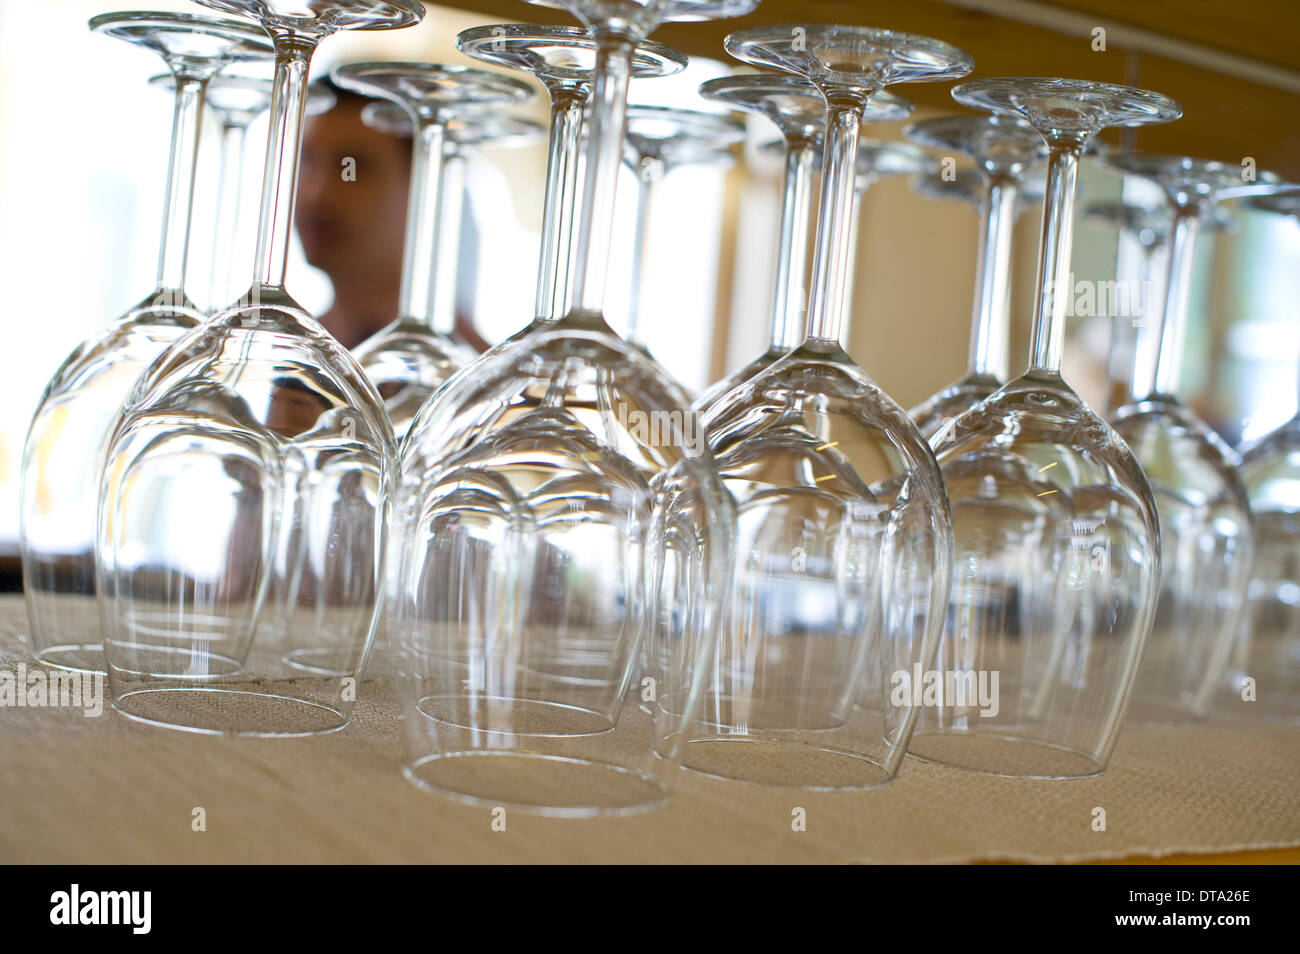 Upside down wine glasses in a restaurant - Stock Image